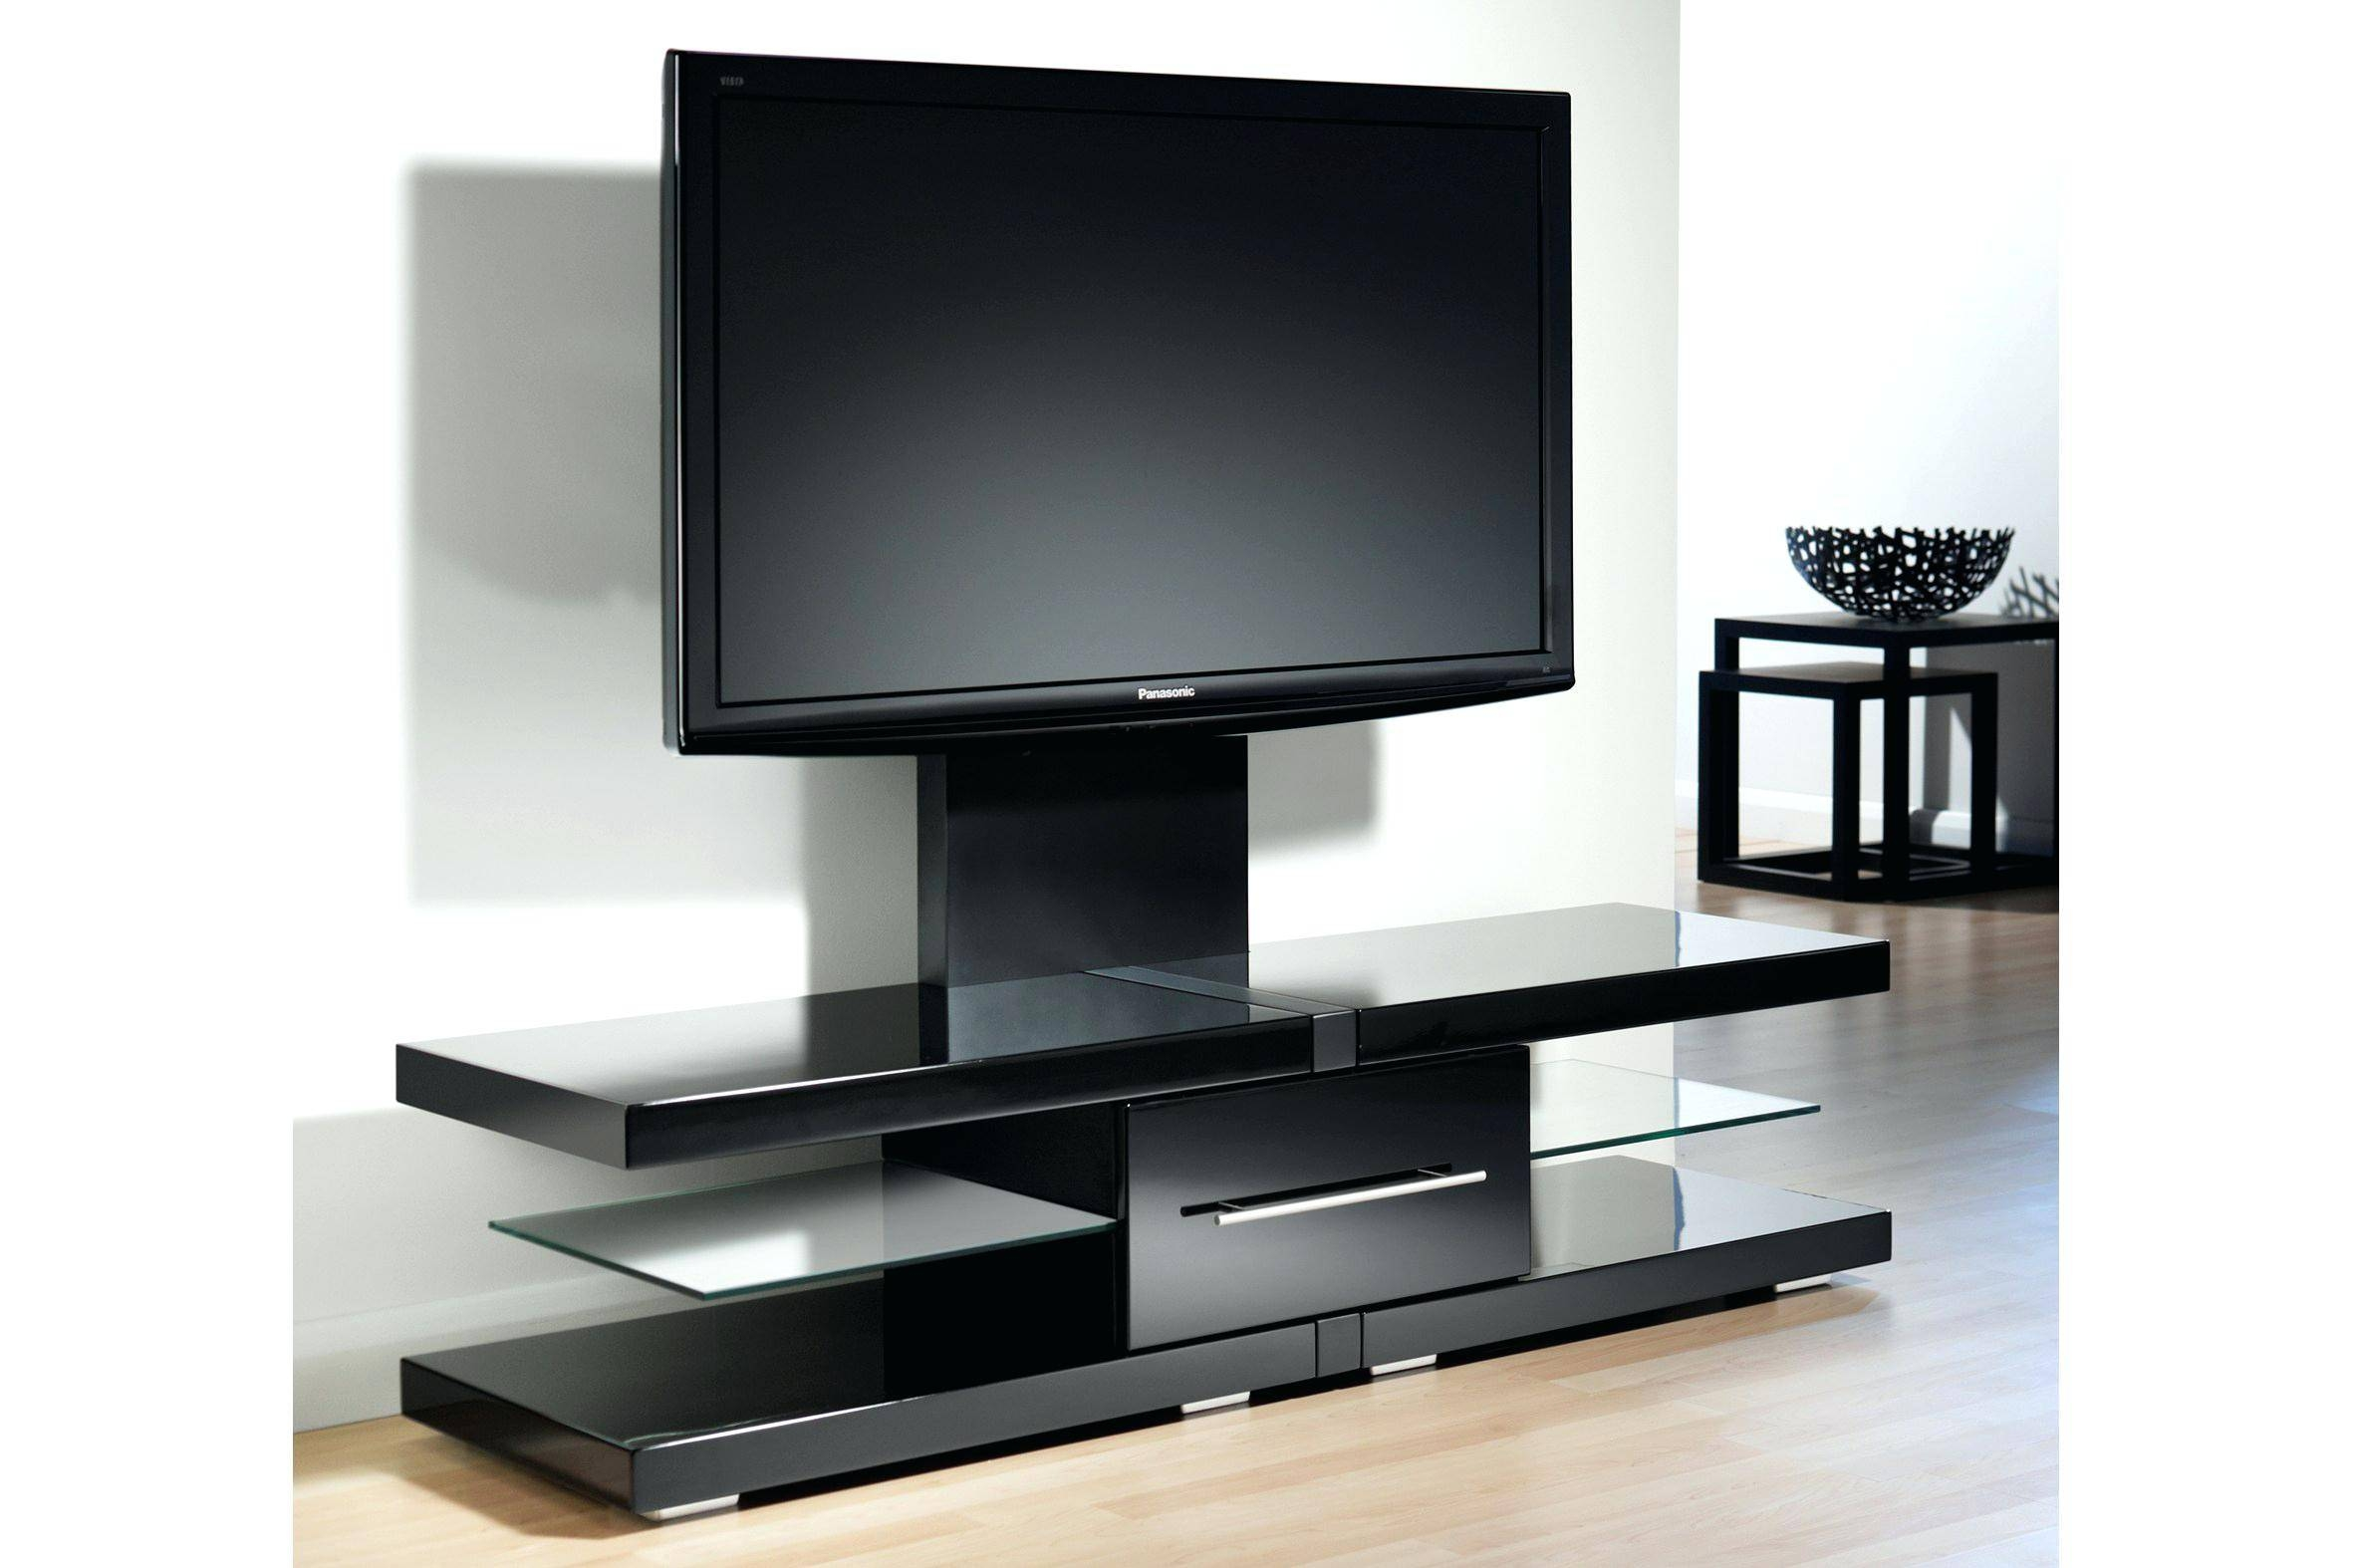 Tv Stand Modern Designs : Latest modern glass tv stands